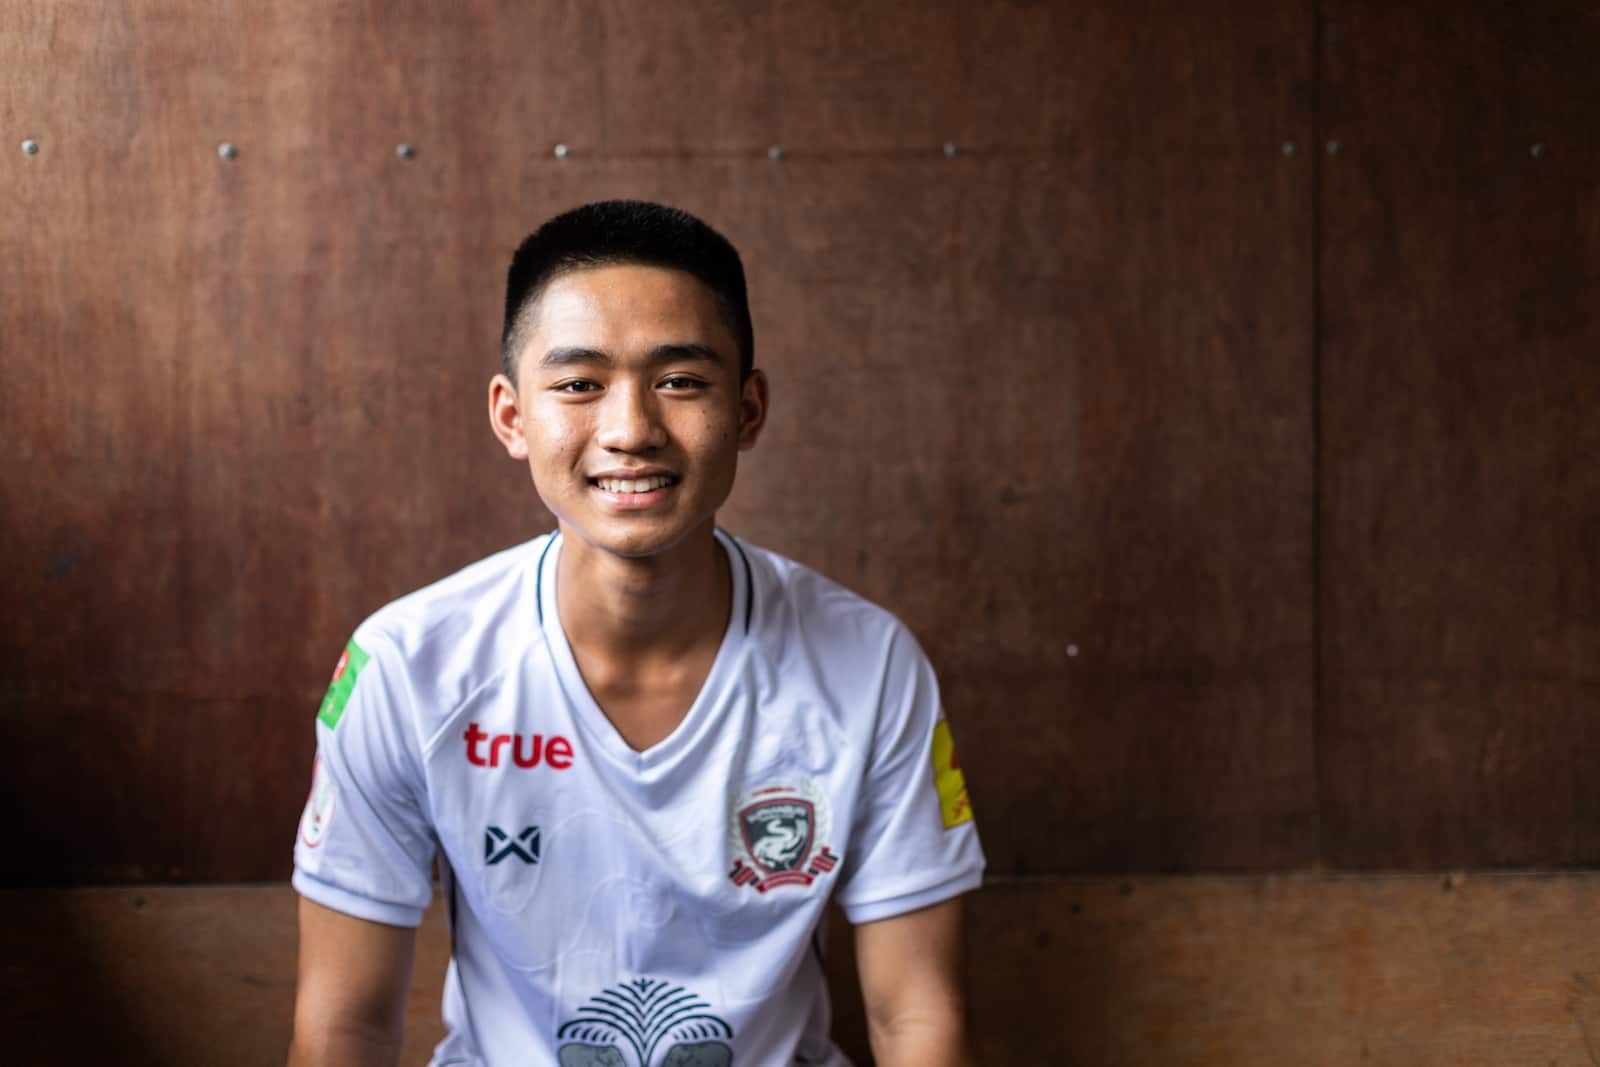 A teenage boy wearing a white T-shirt sits in front of a brown background and smiles at the camera.